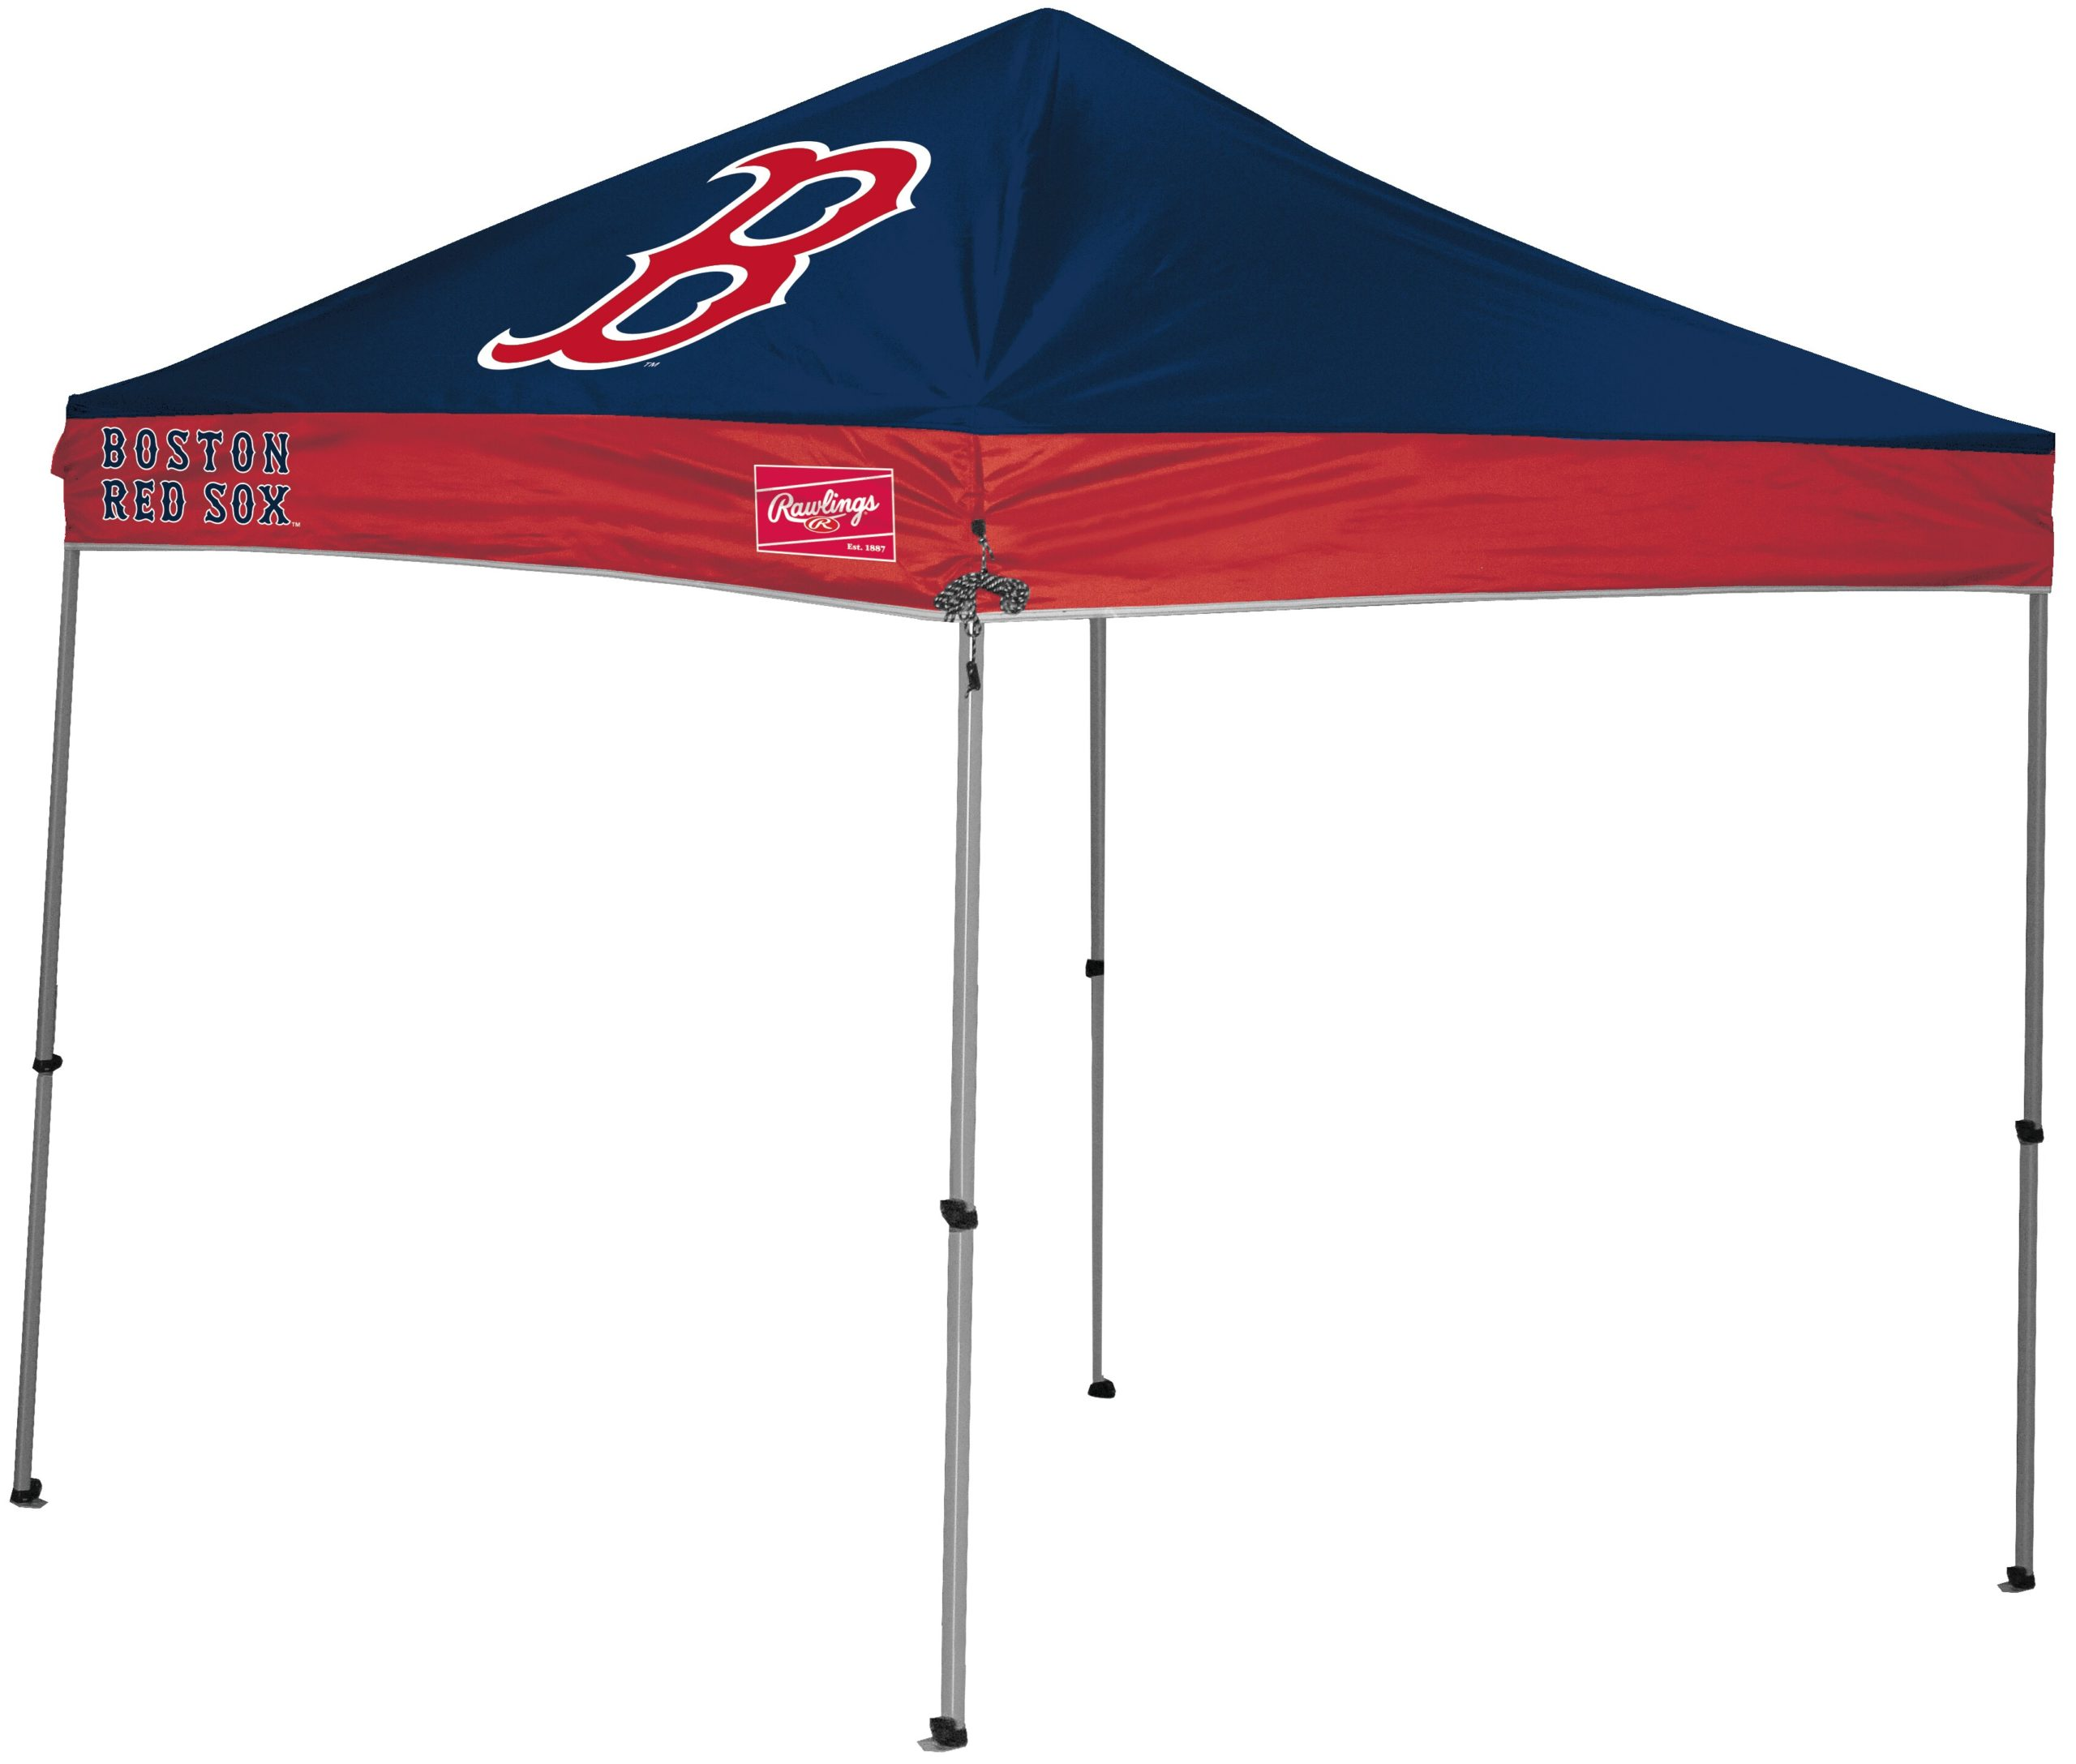 Boston Red Sox Rawlings 9' x 9' Canopy Tent